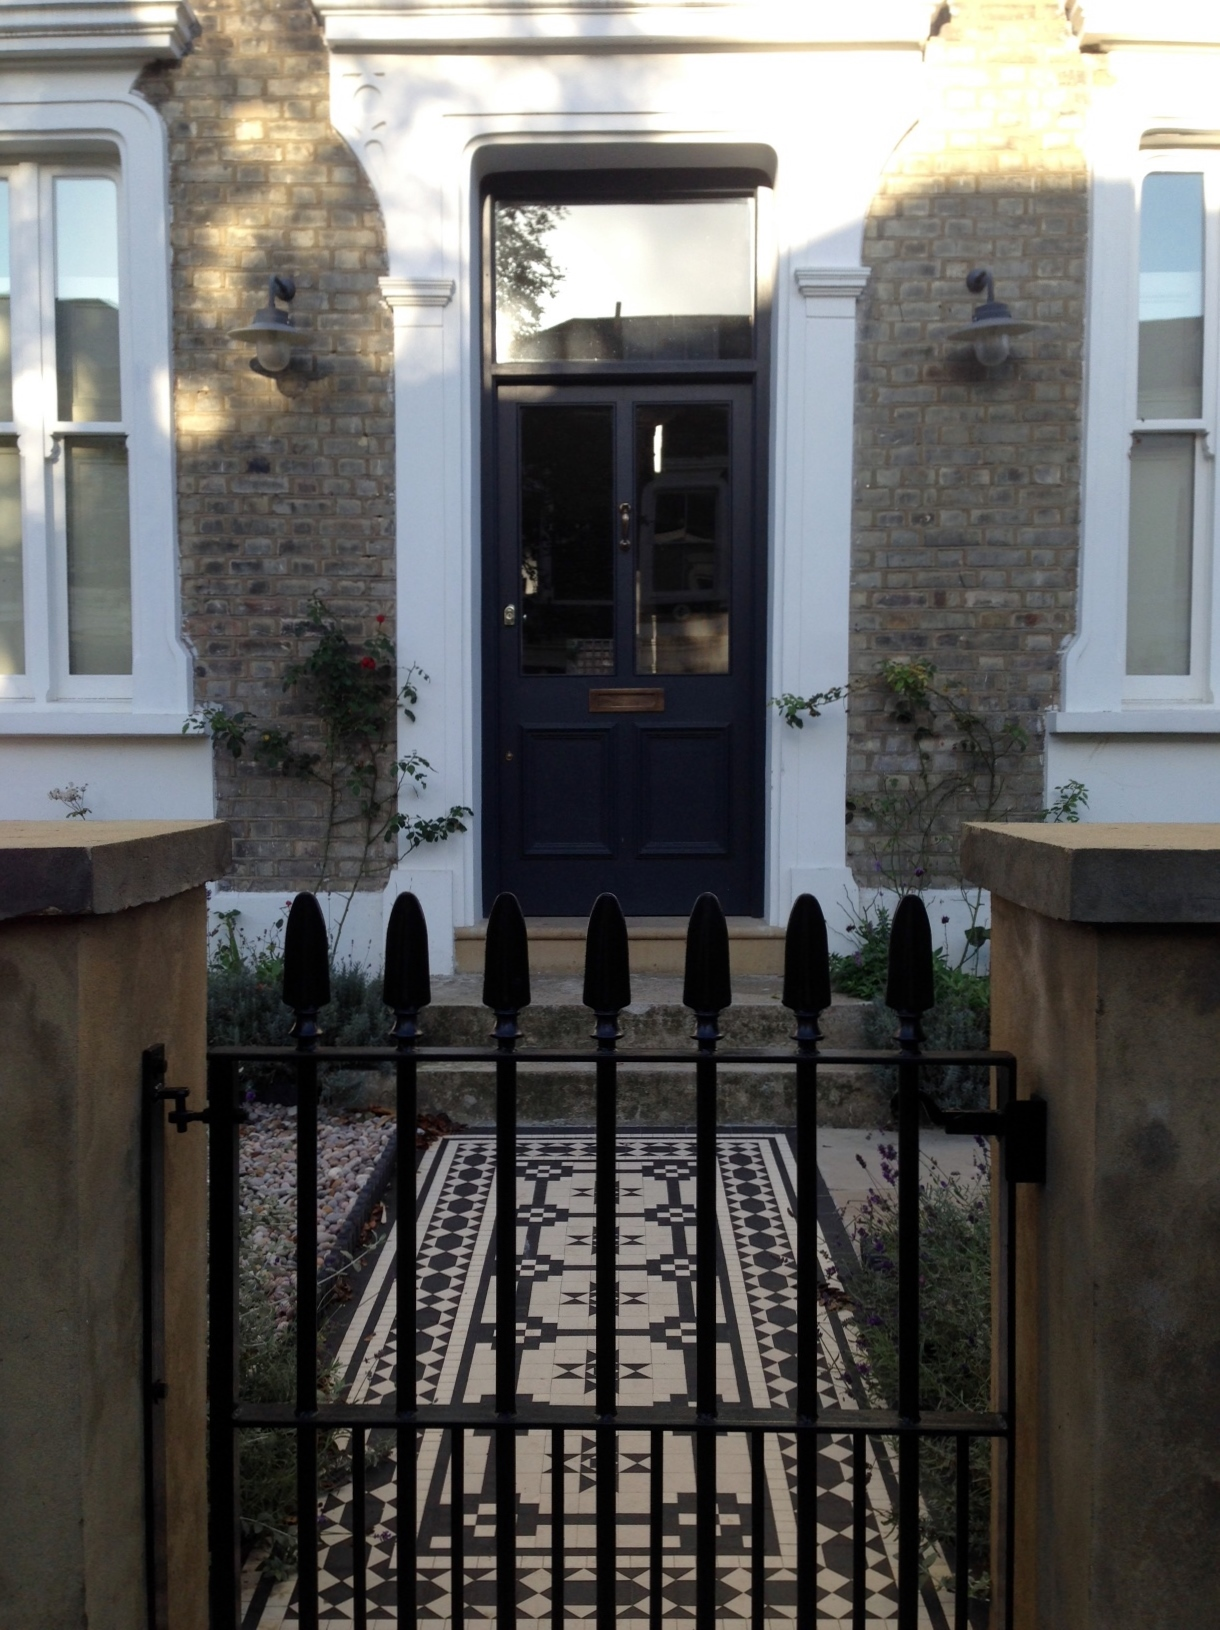 Islington Victorian mosaic tile path York stone sandstone paving wrought iron rails and gate London (15)